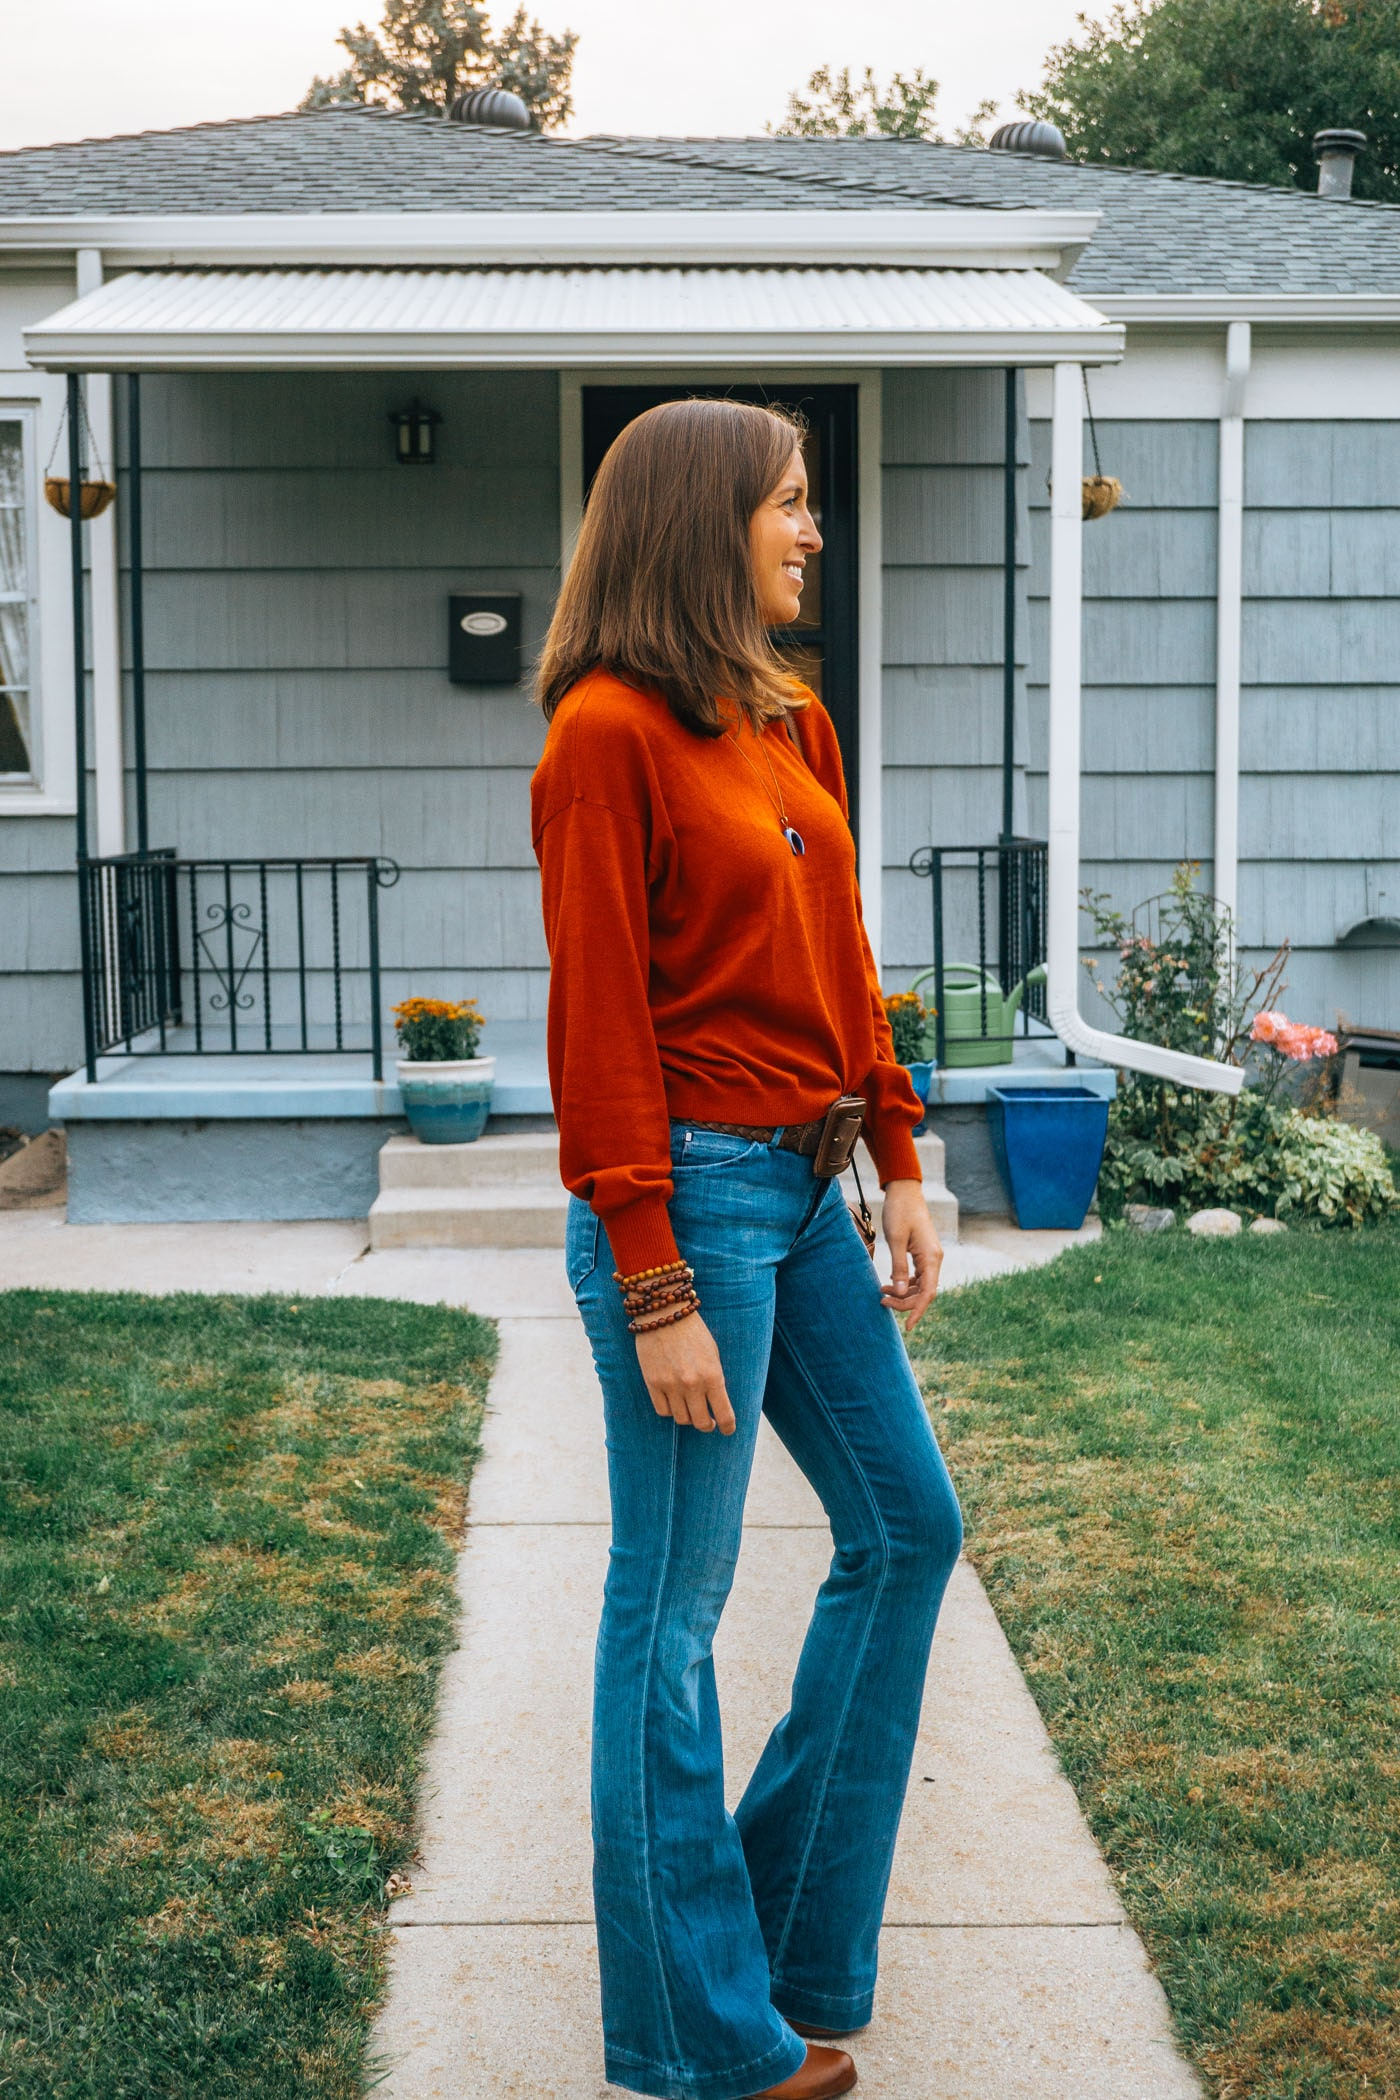 My Go-To Look - Flares